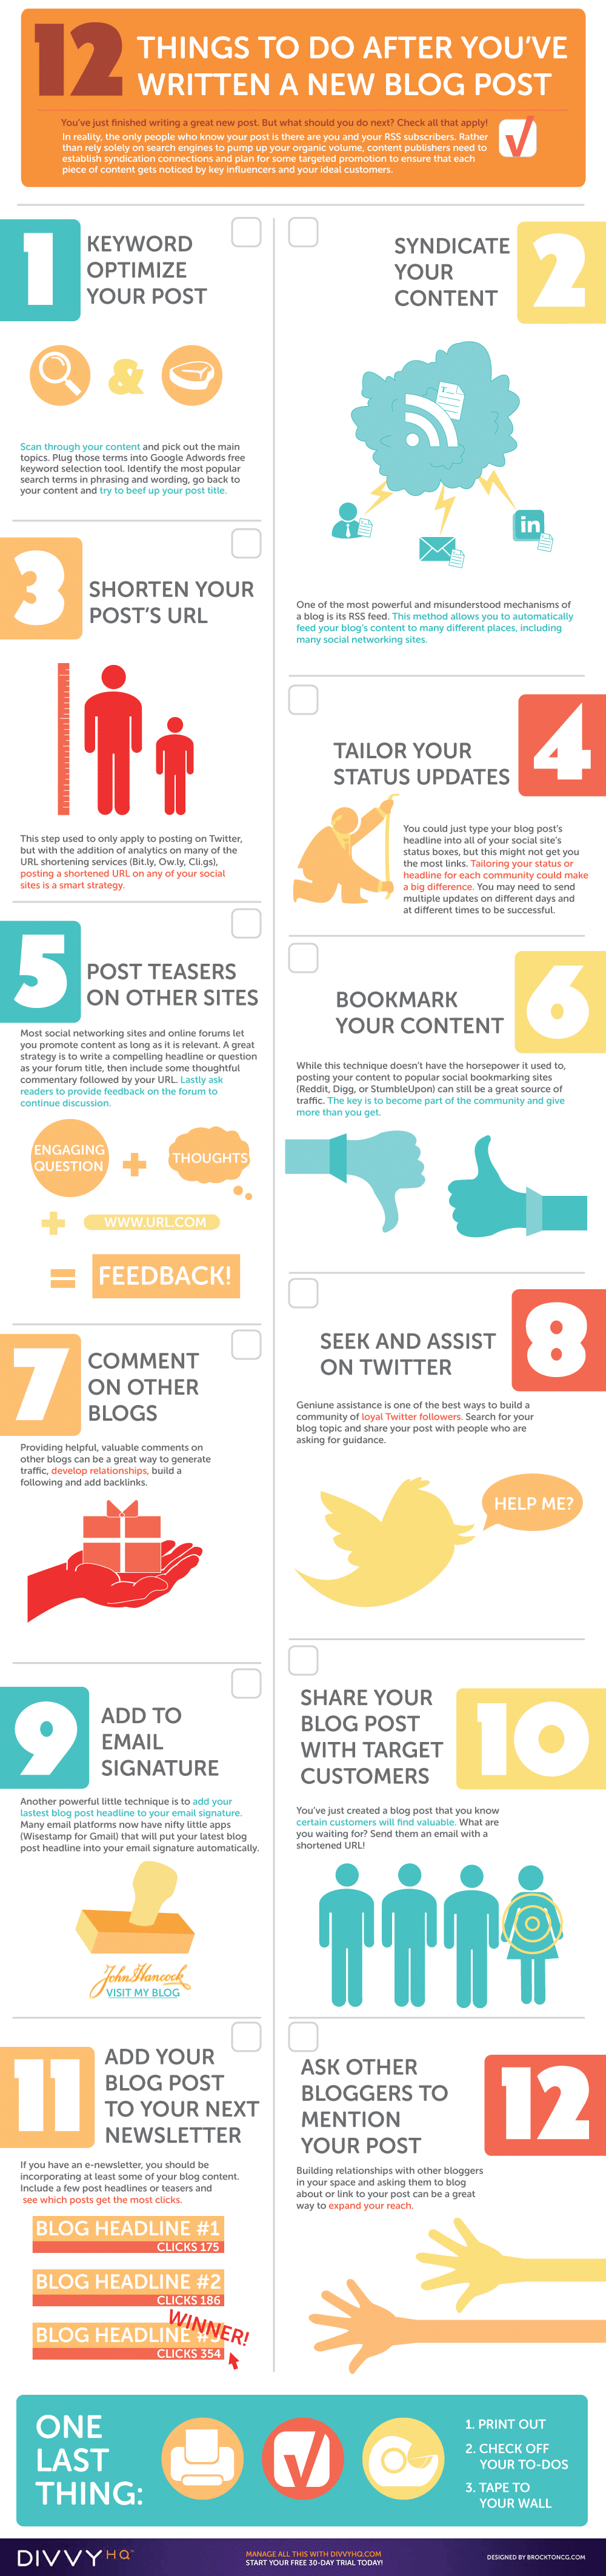 12 Must Do Things After You Have Written A New Blog Post [Infographic]